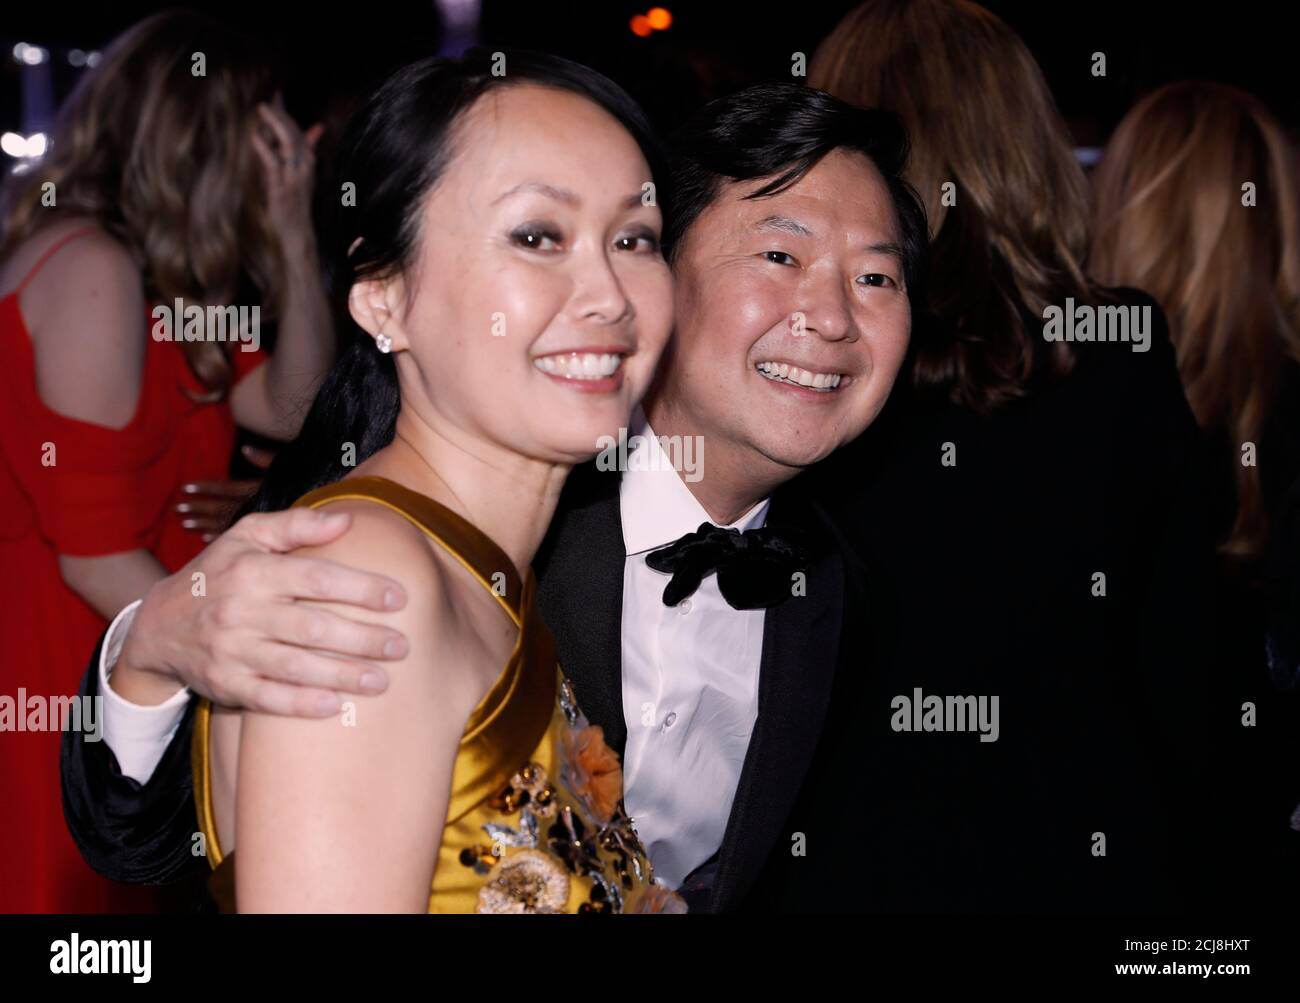 Ken Jeong And Wife Tran High Resolution Stock Photography And Images Alamy